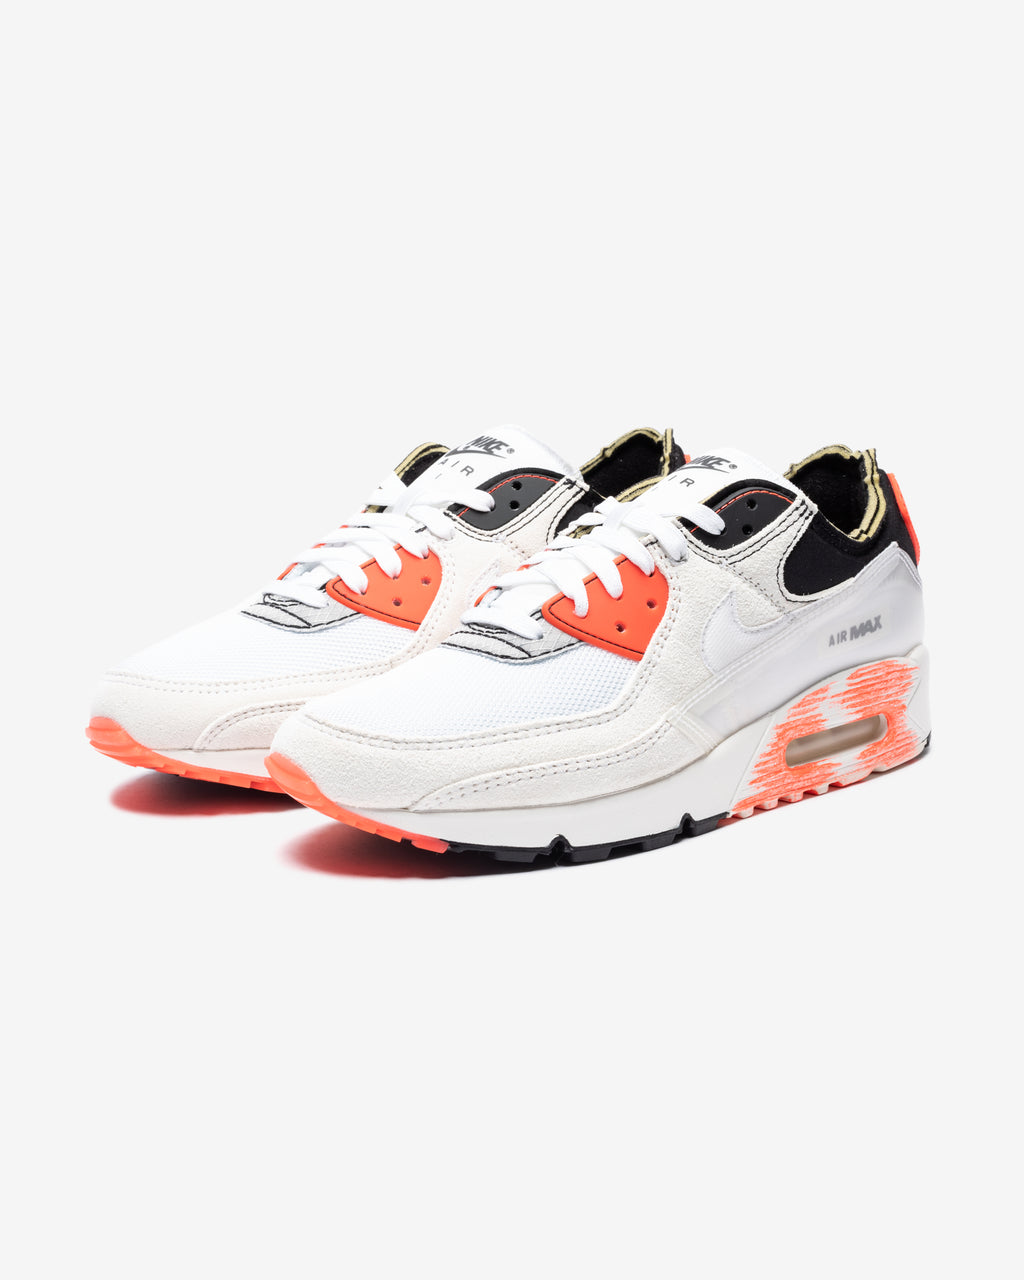 AIR MAX 90 PREMIUM - WHITE/ BLACK/ BRIGHTCRIMSON